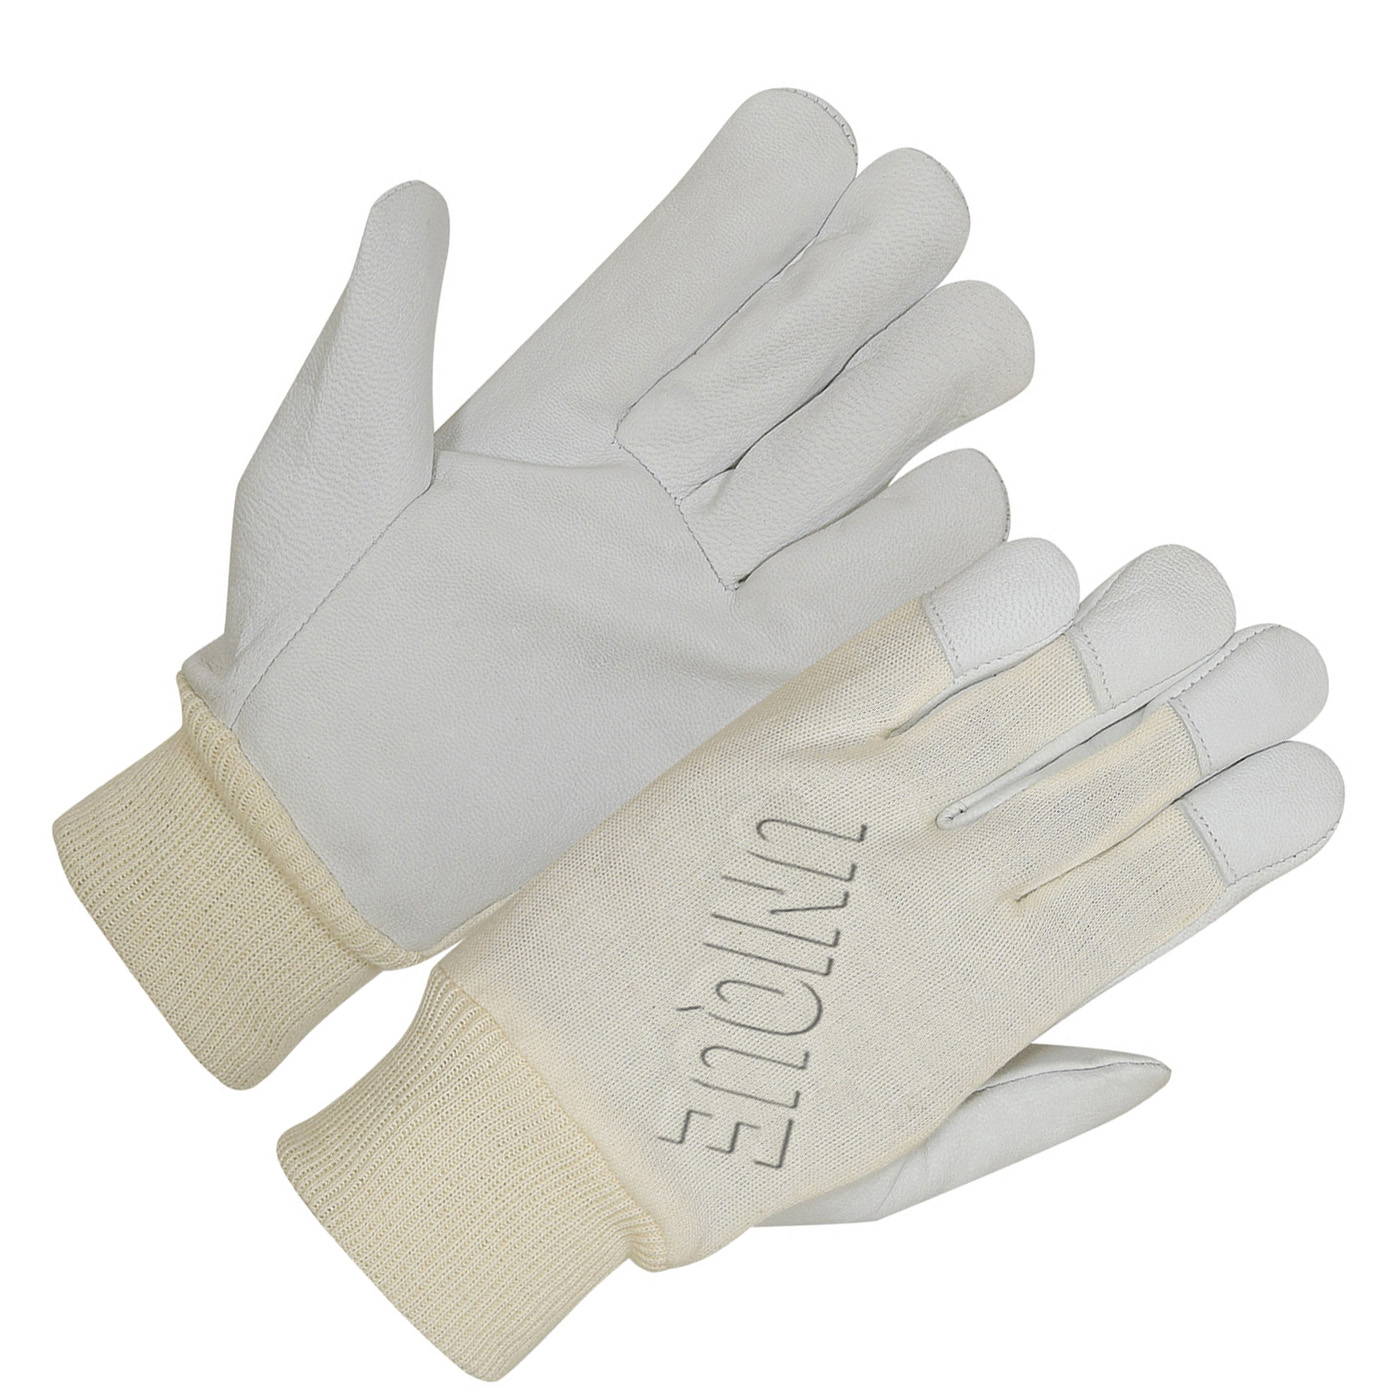 Goat Skin Leather Glove With Interlock